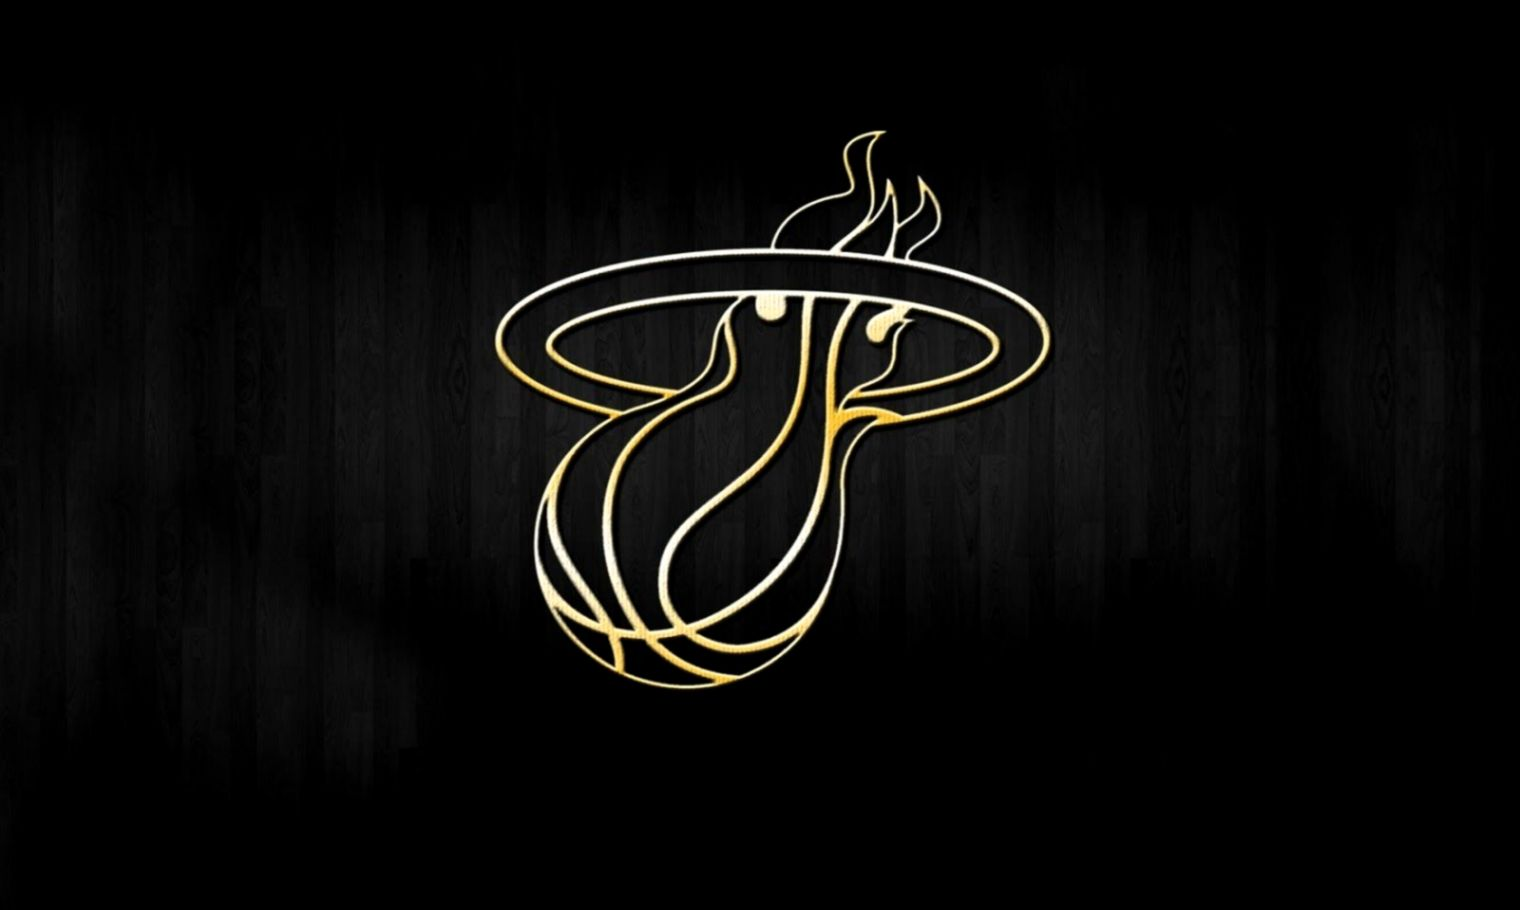 Miami Heat Desktop Wallpaper The Last Wallpapers 1520x910